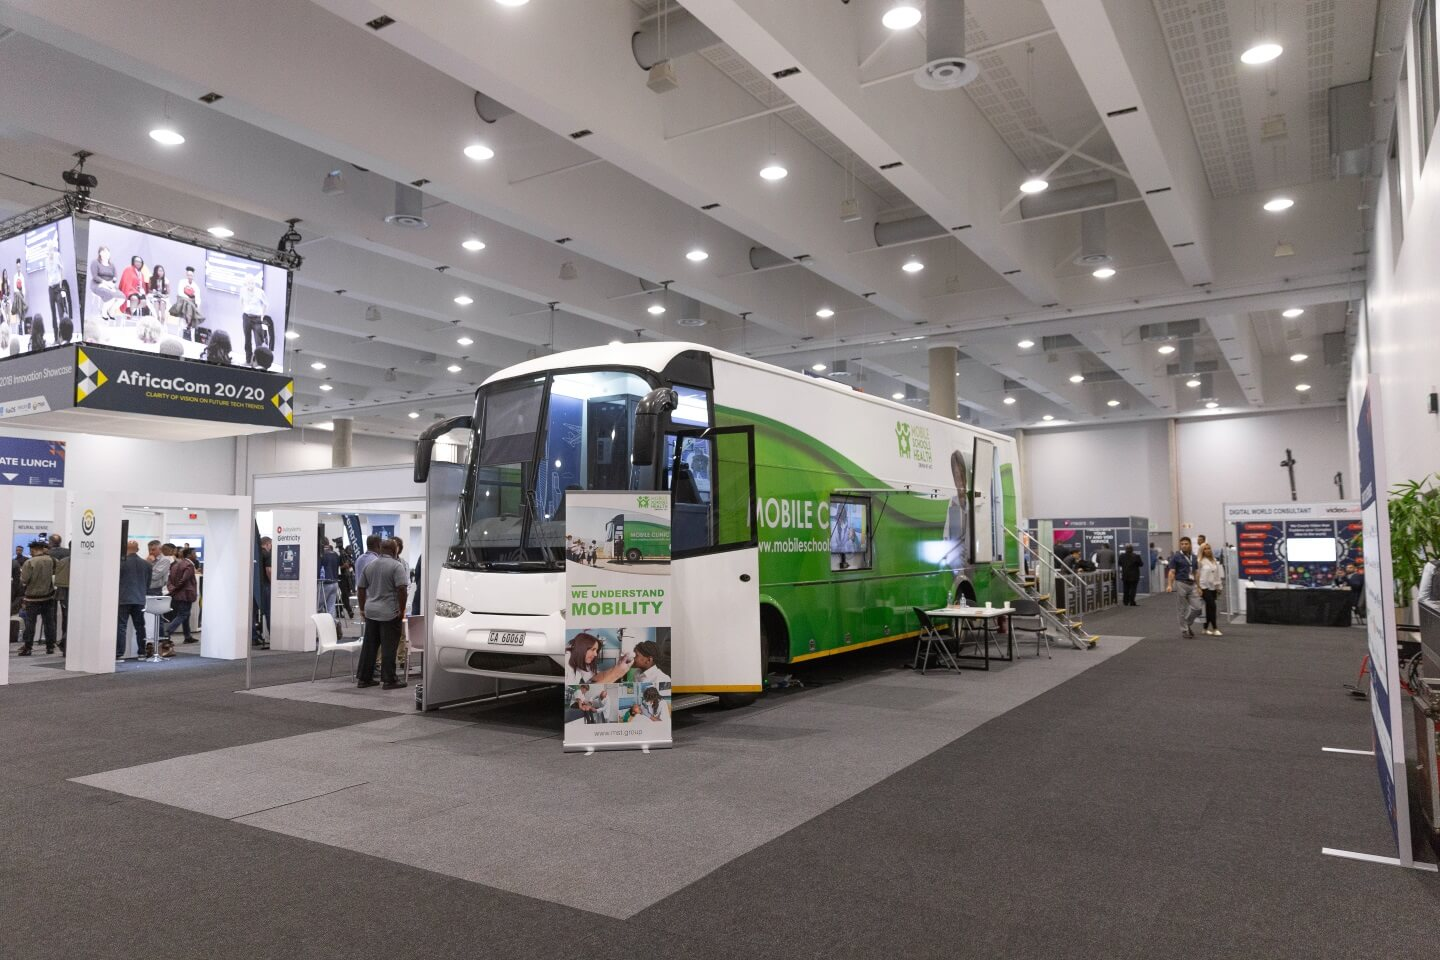 Mobile Schools Health bus at AfricaCom